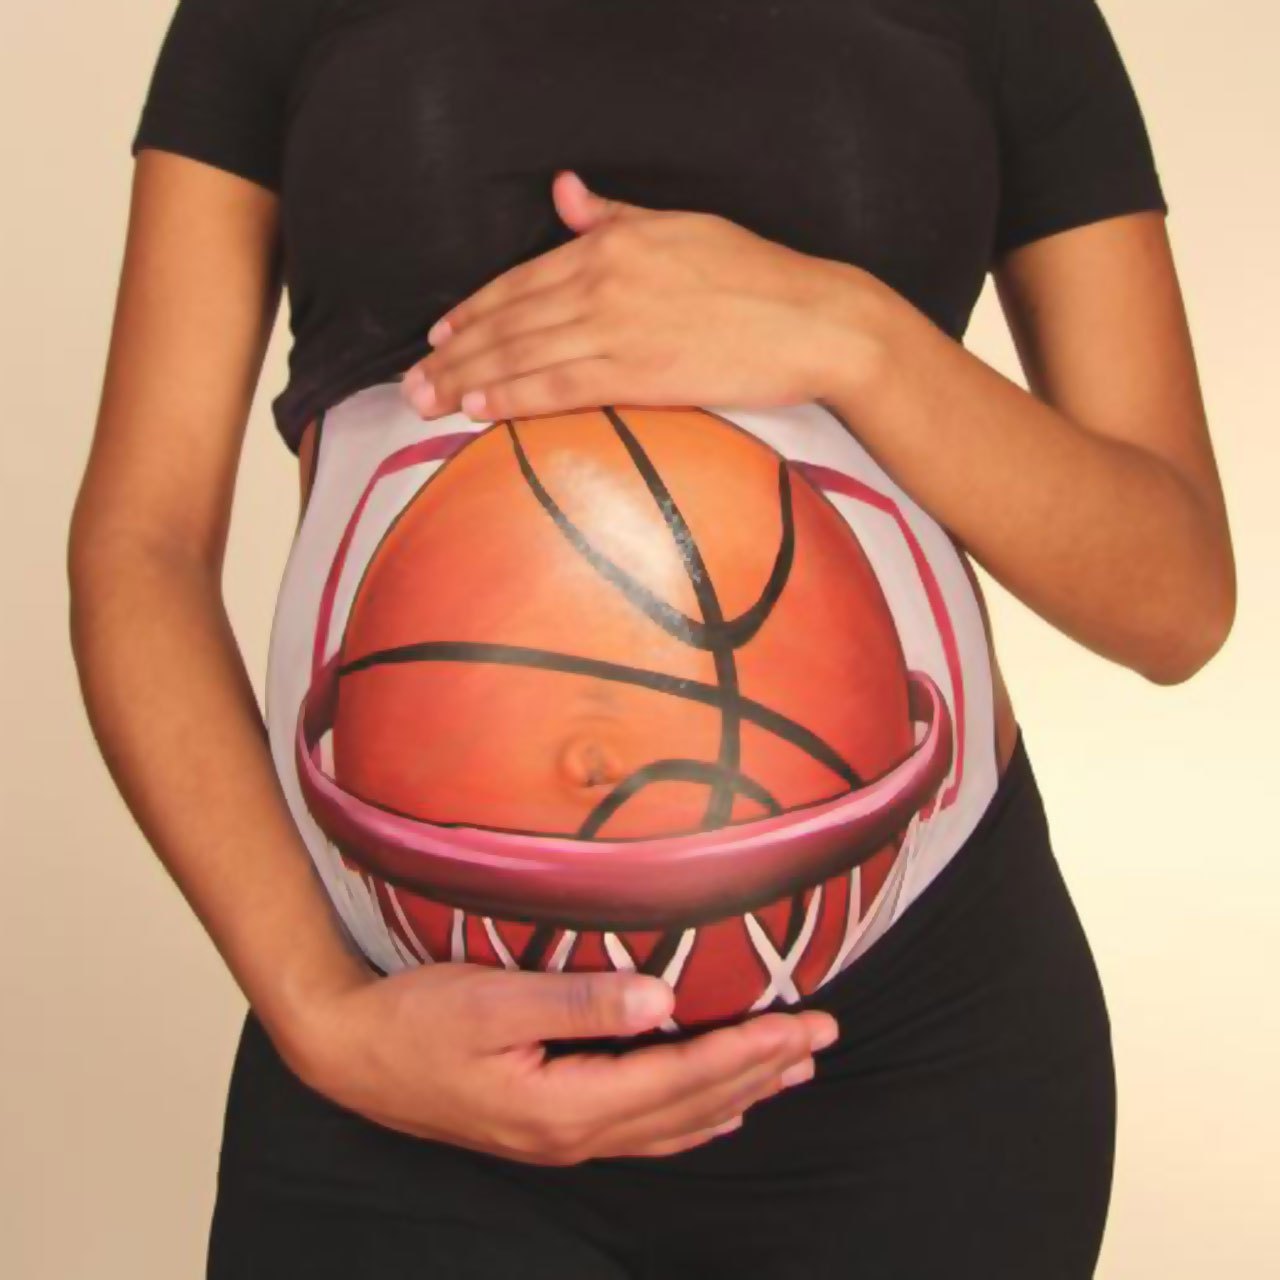 Ayesha Curry can hit a three-pointer even in her ninth month of pregnancy